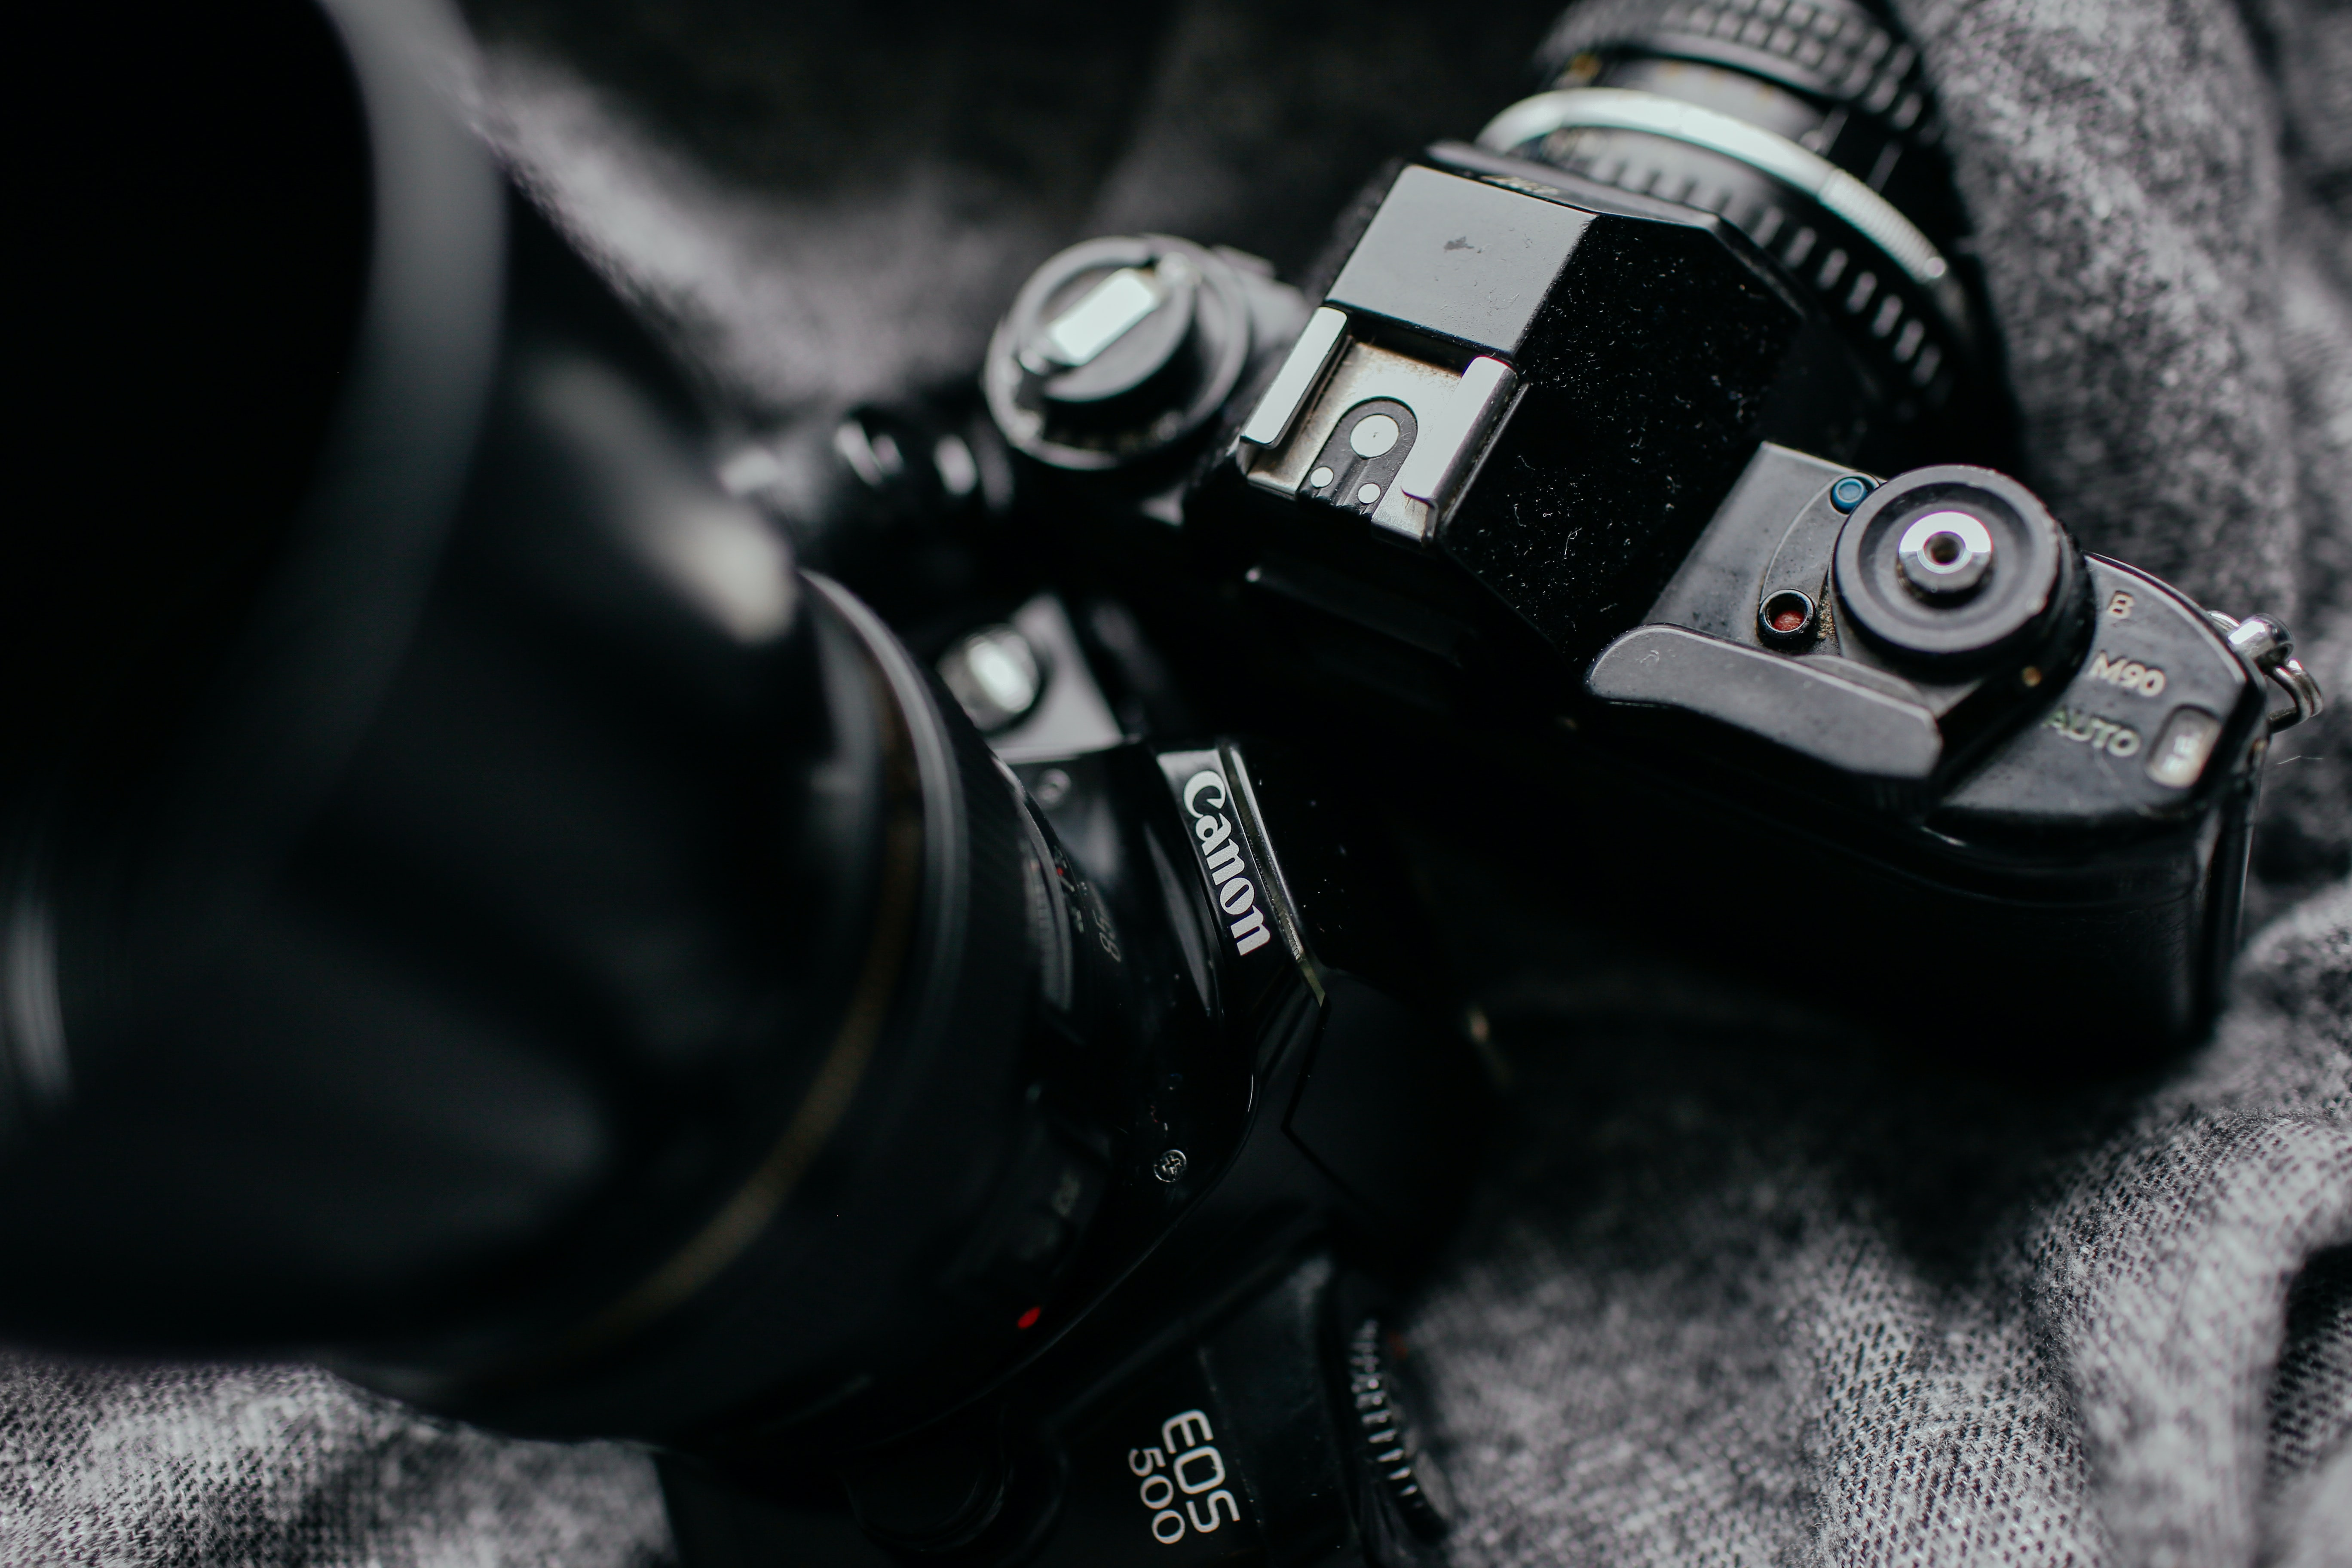 focus photography of two DSLR cameras